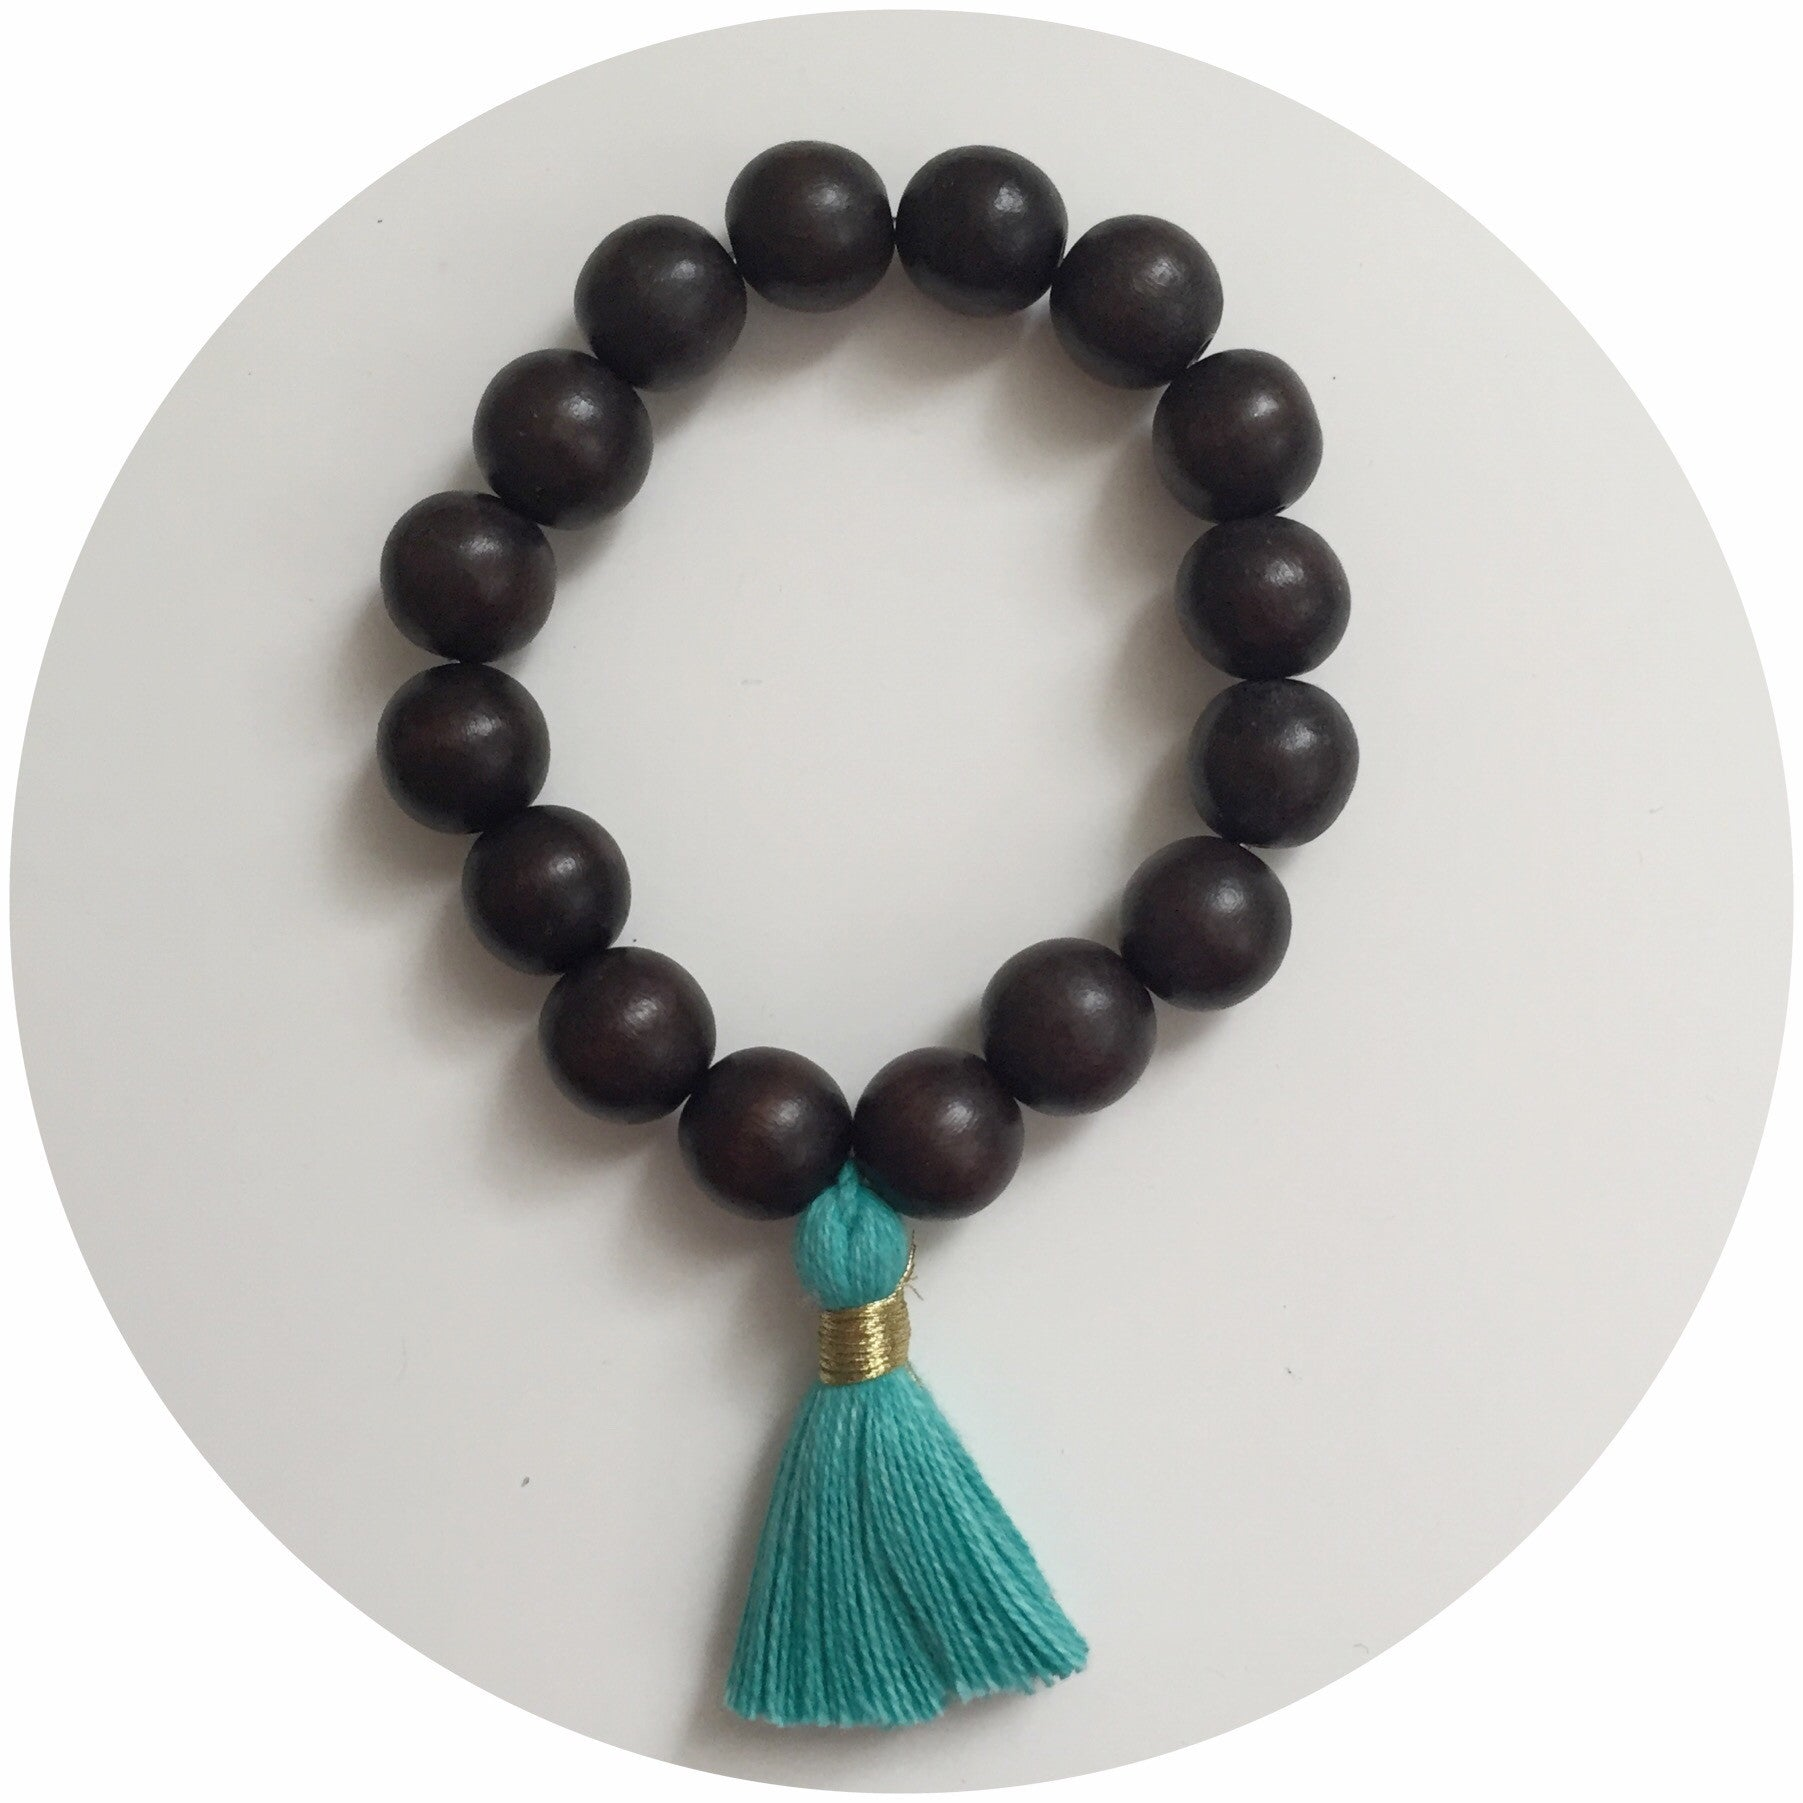 Ebony Wood with Turquoise Tassel - Oriana Lamarca LLC